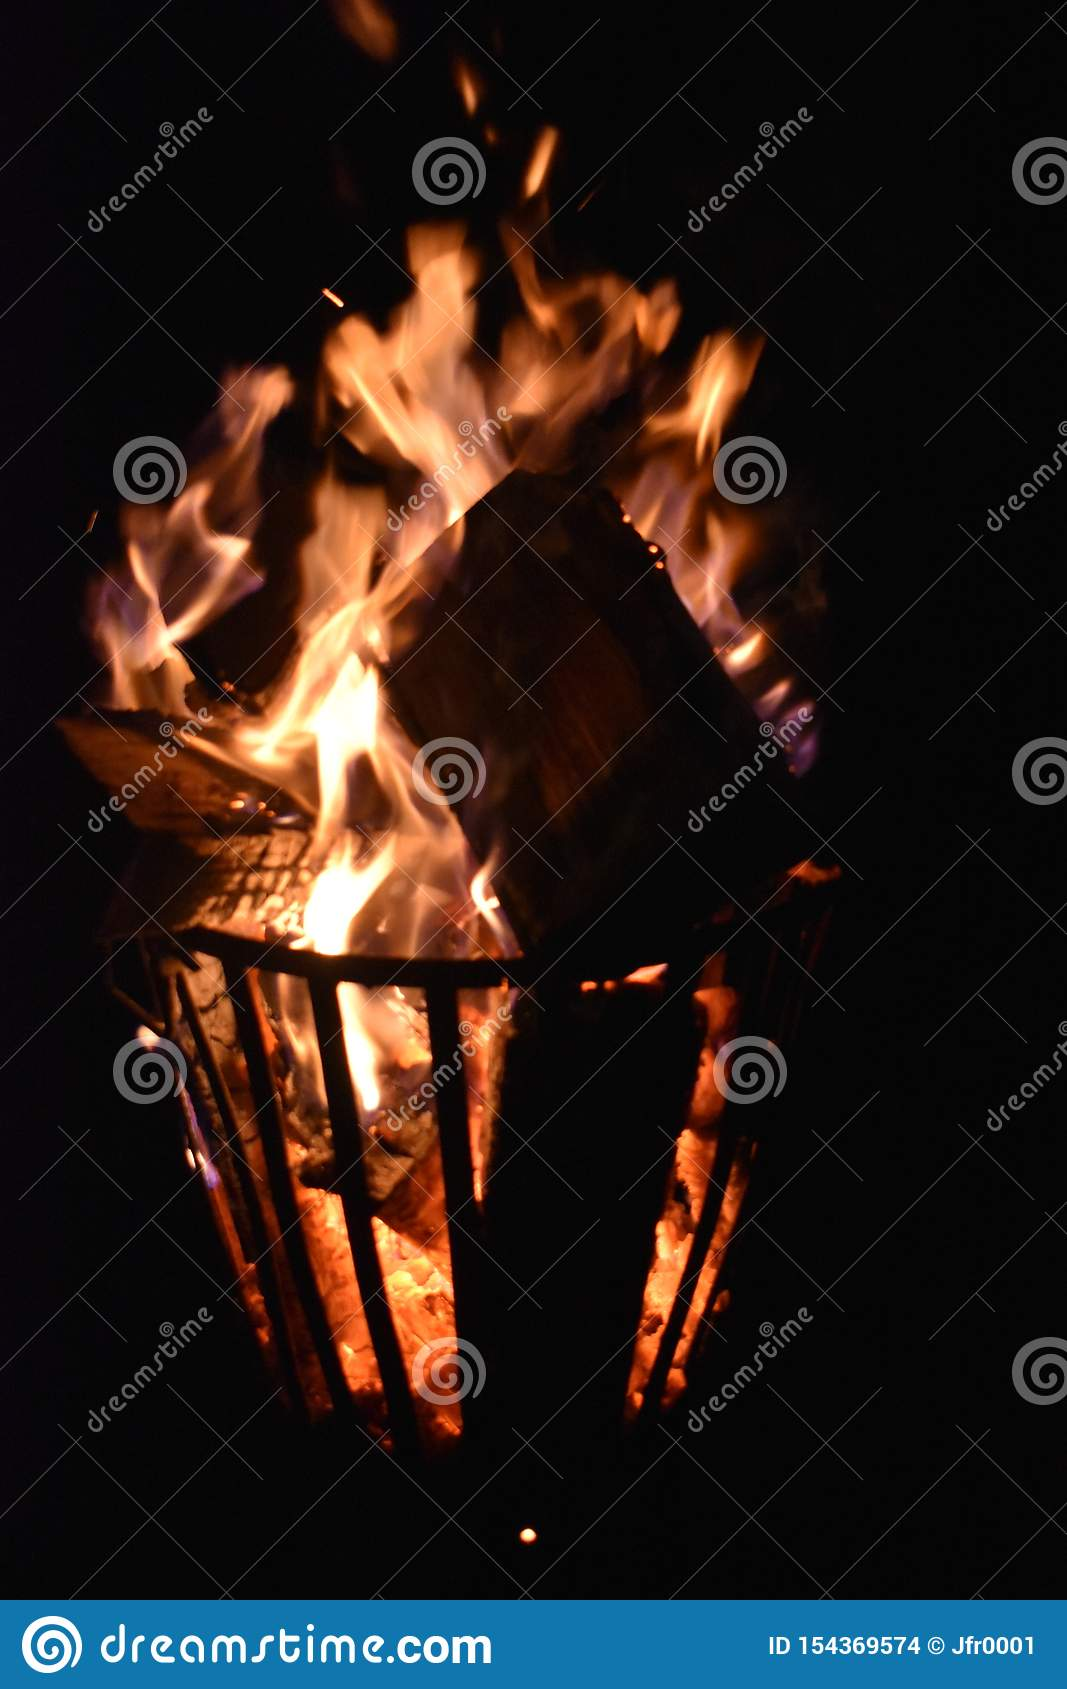 Fire in an iron fire pit